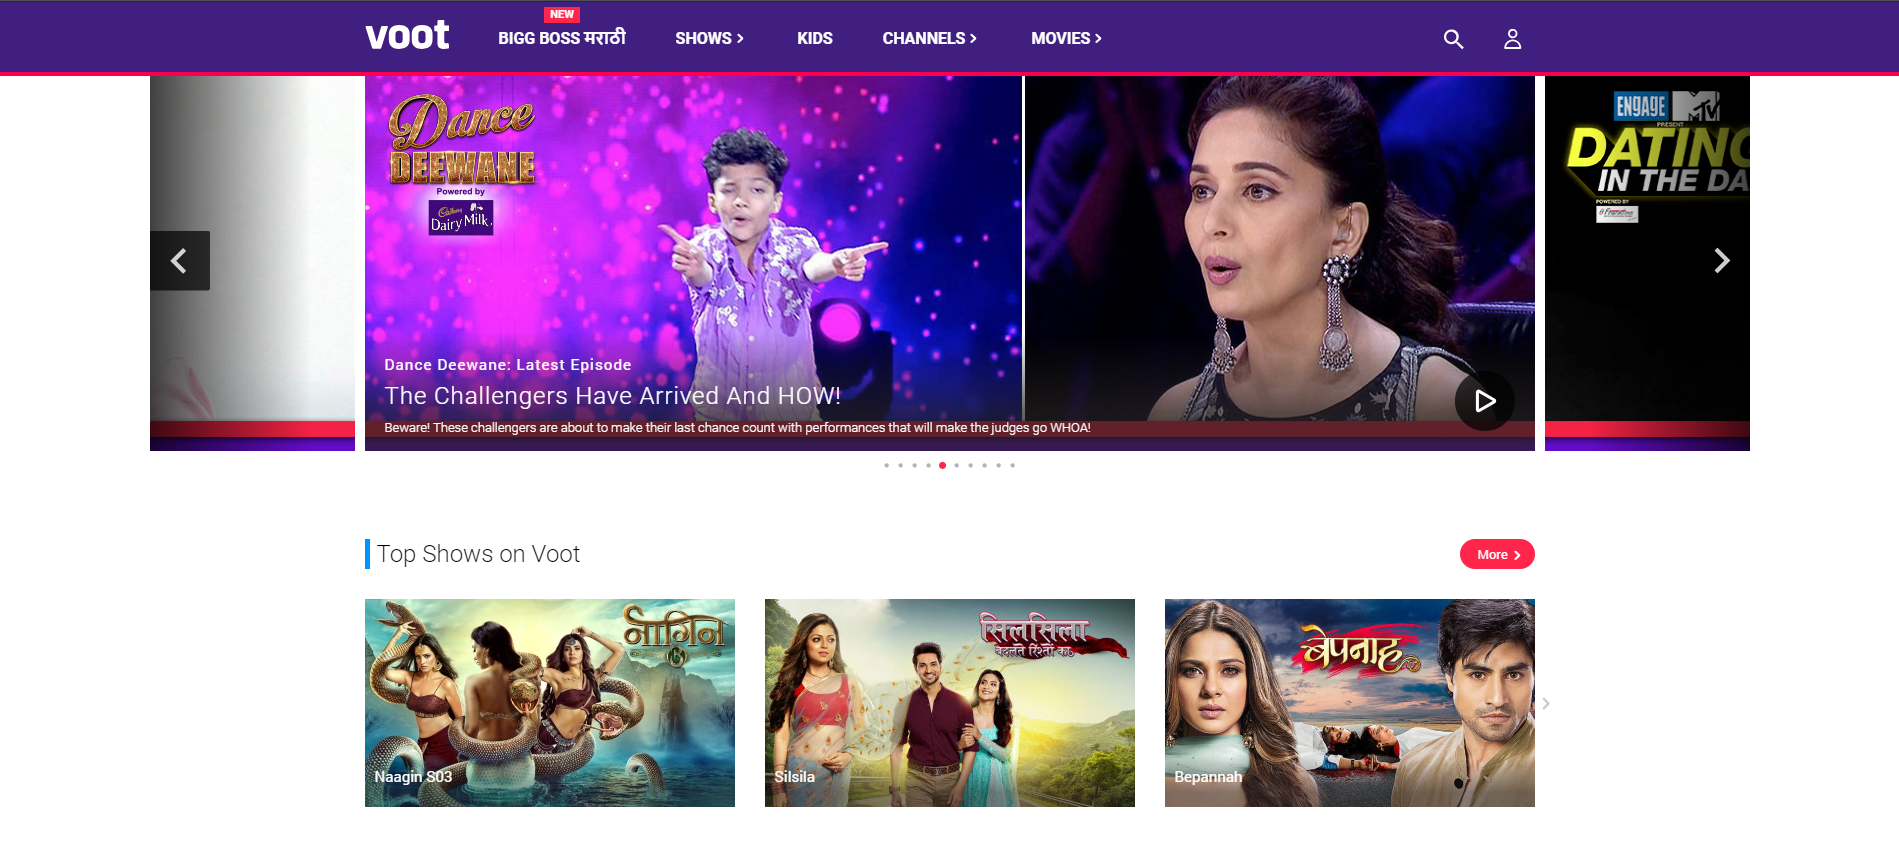 VOOT VOD app by viacom for Indian users